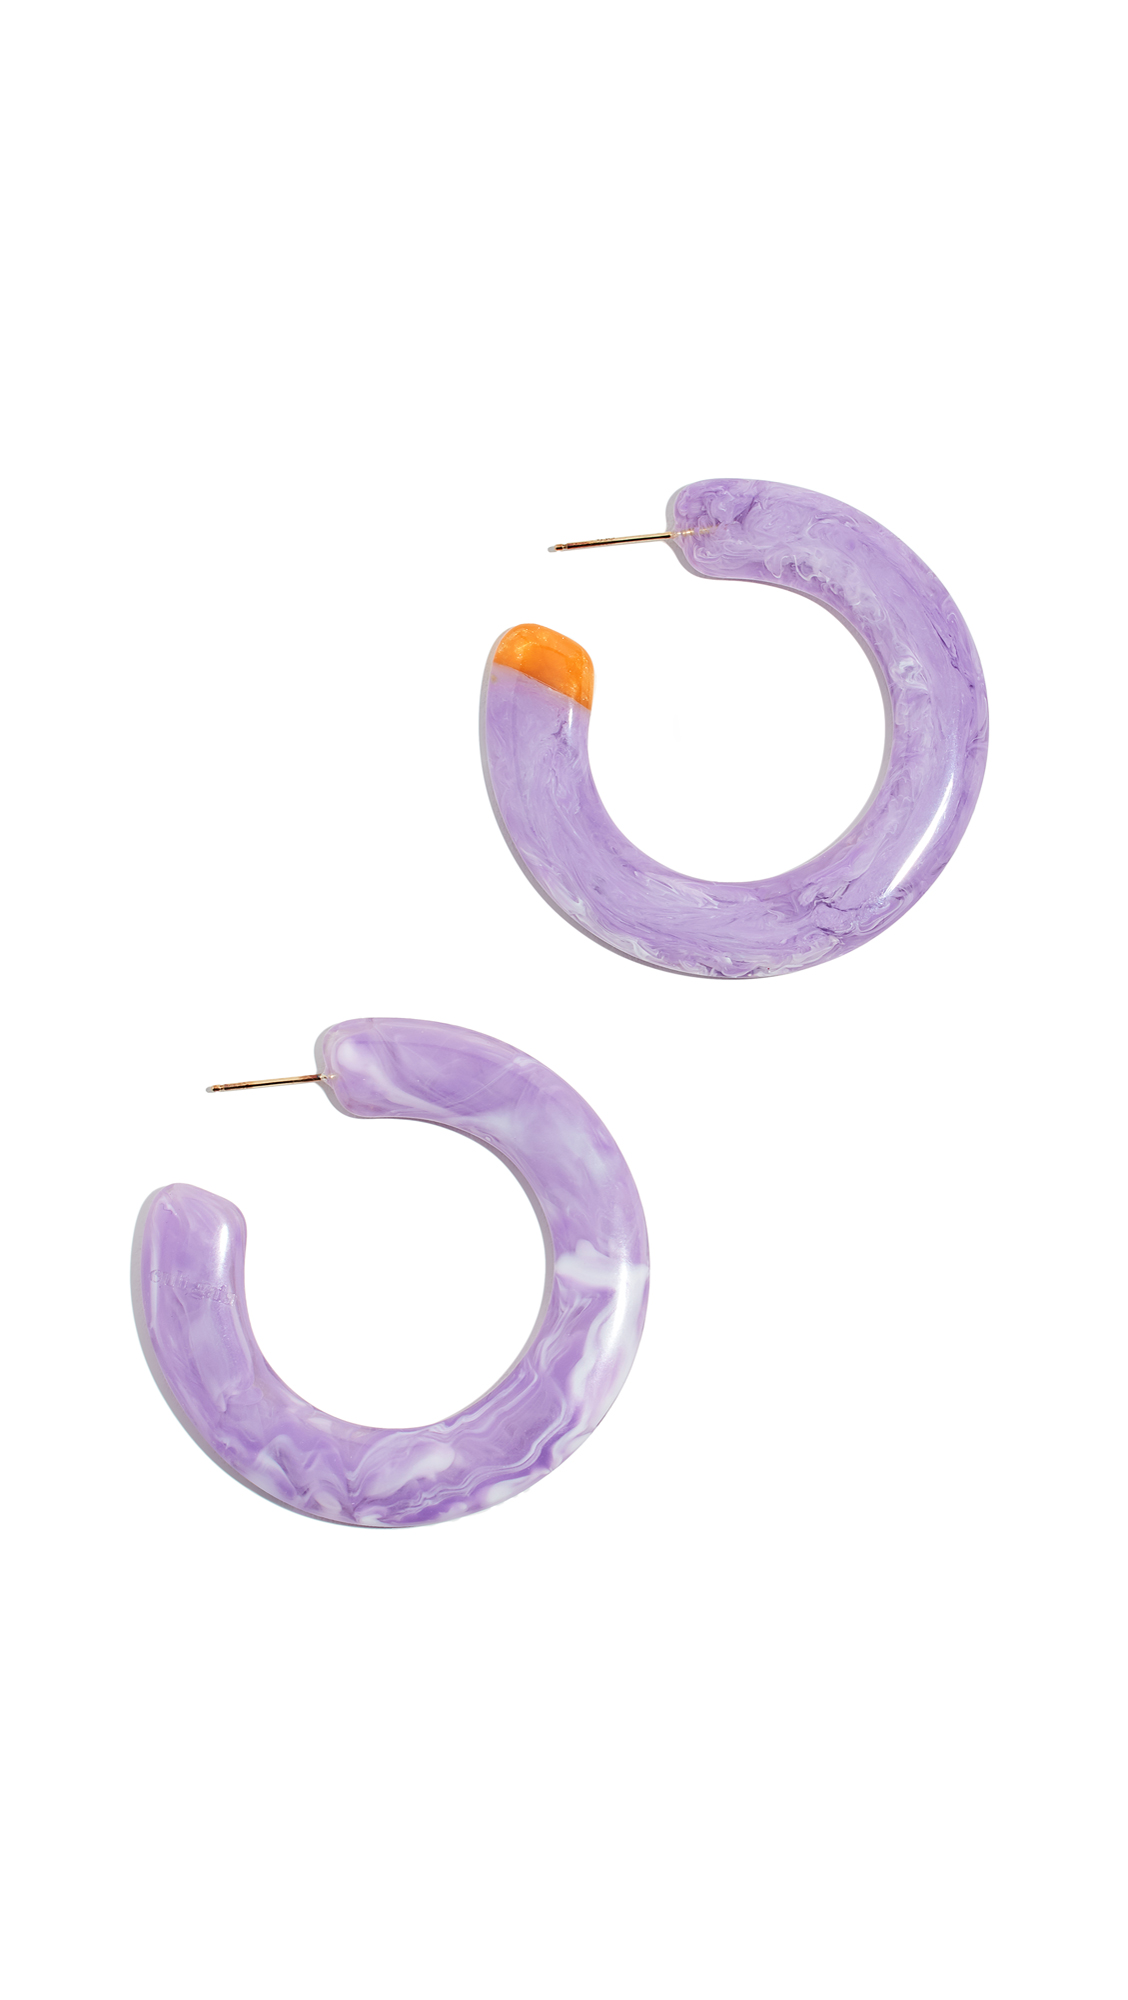 Mira Small Flat Hoop Earrings in Lavender